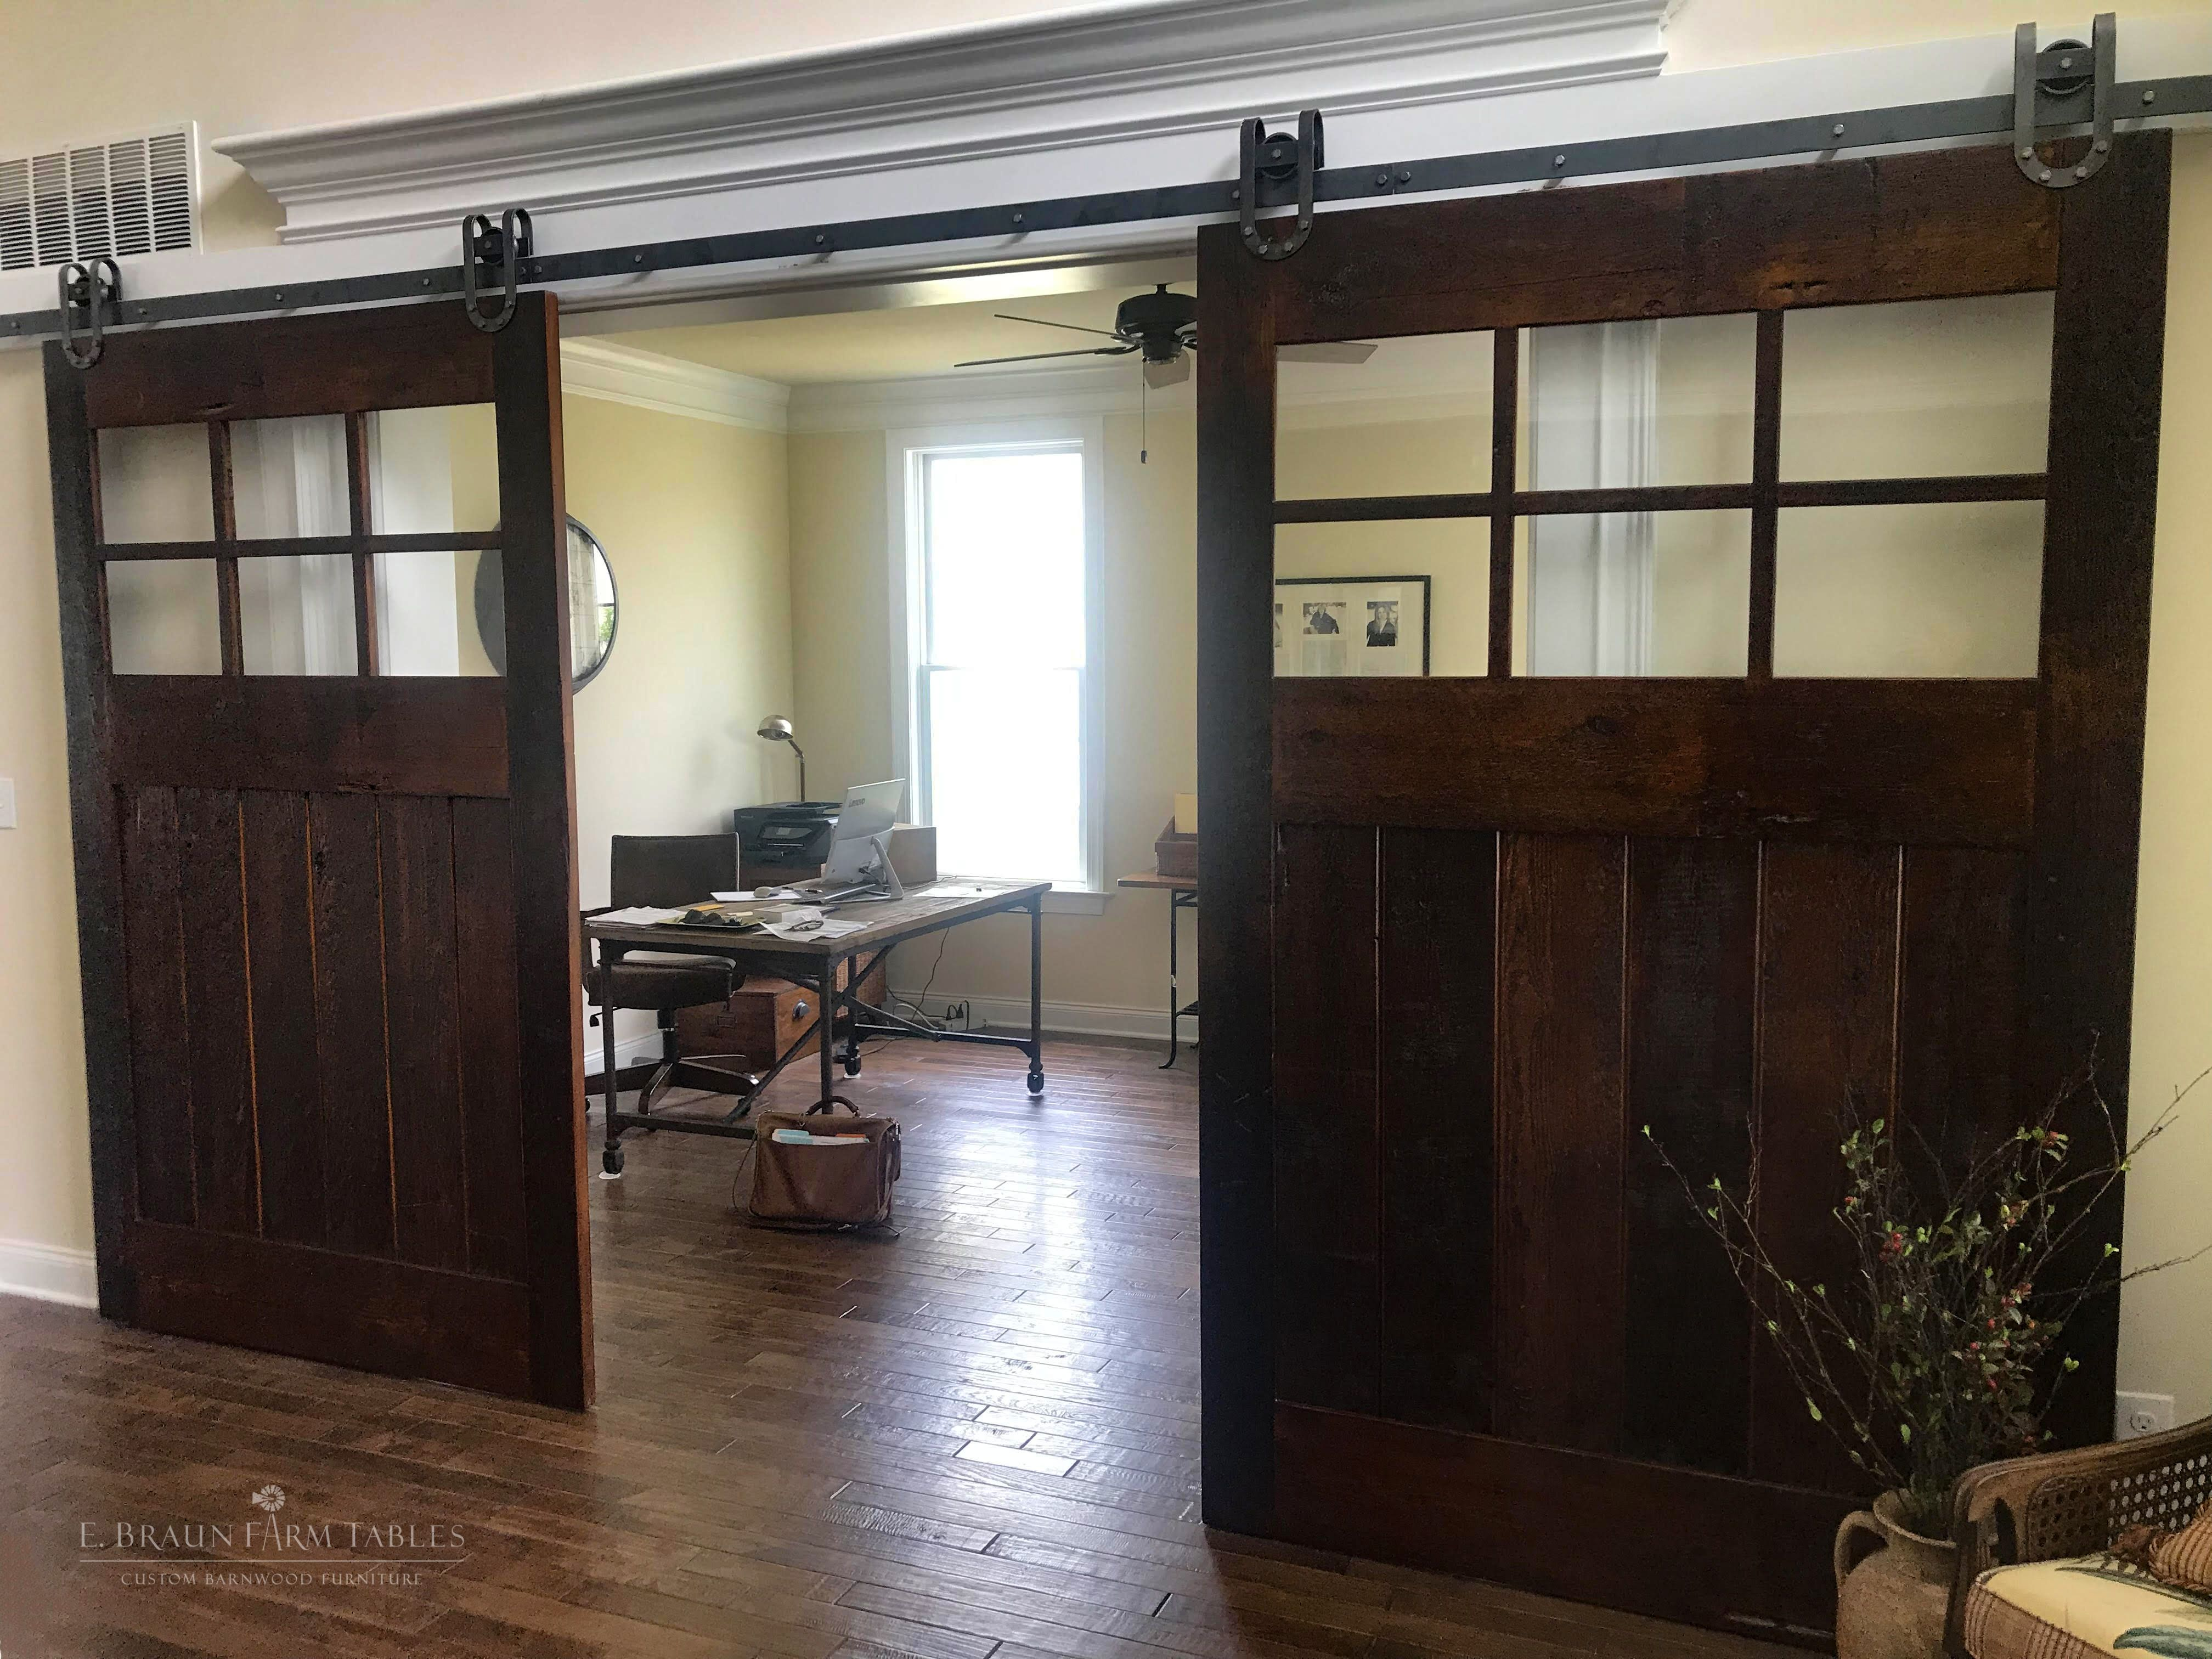 Why Yes We Make Custom Barn Doors Doors Shown Are Each 90 5 8 H X 56 5 8 W And Are Crafted Using High Charact Barnwood Furniture Custom Barn Doors Barn Door